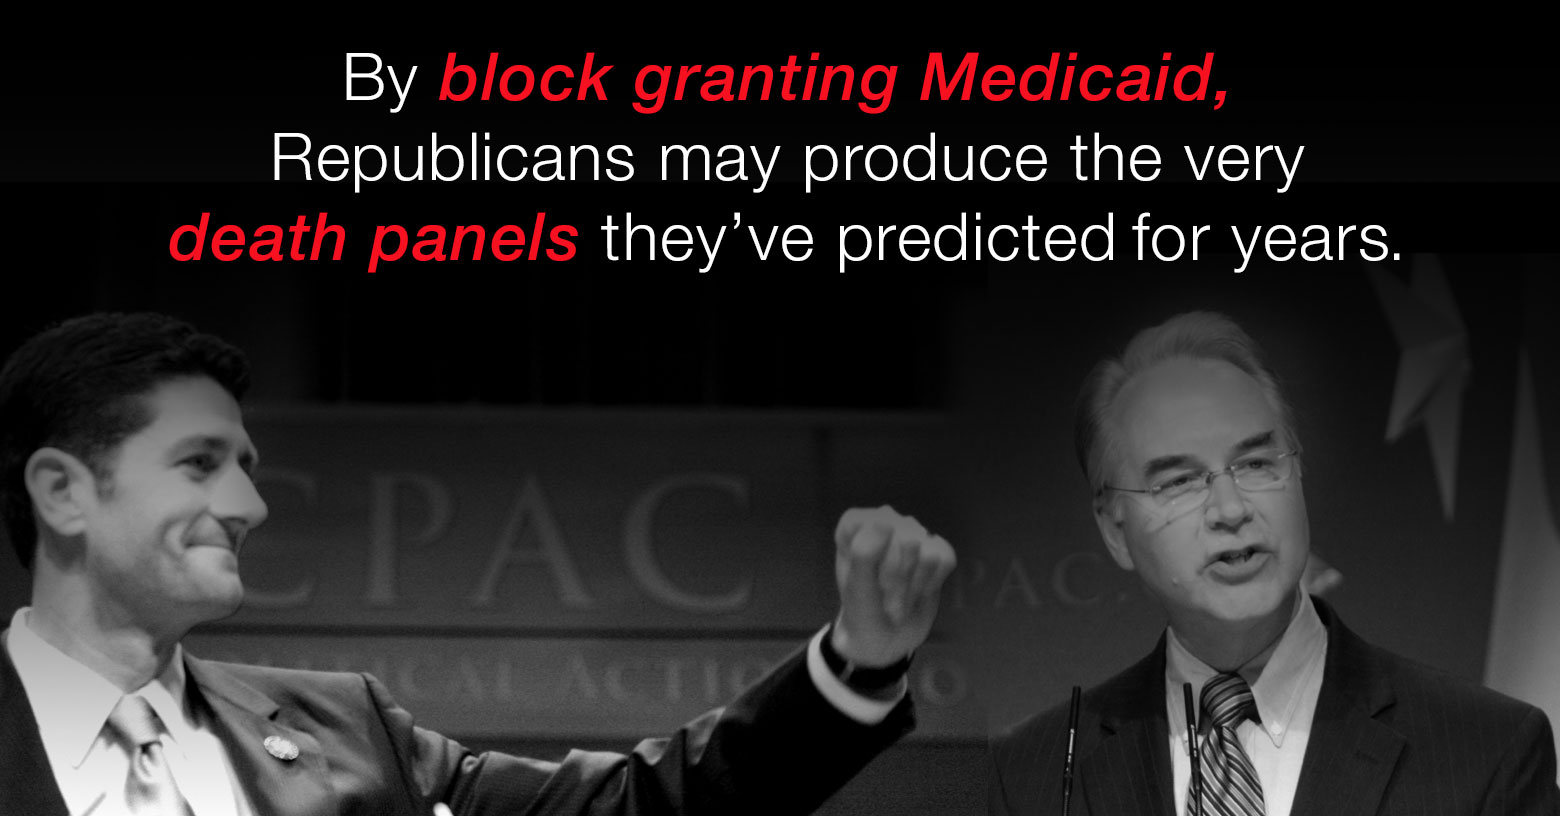 Could Republicans wreck Medicaid? photo